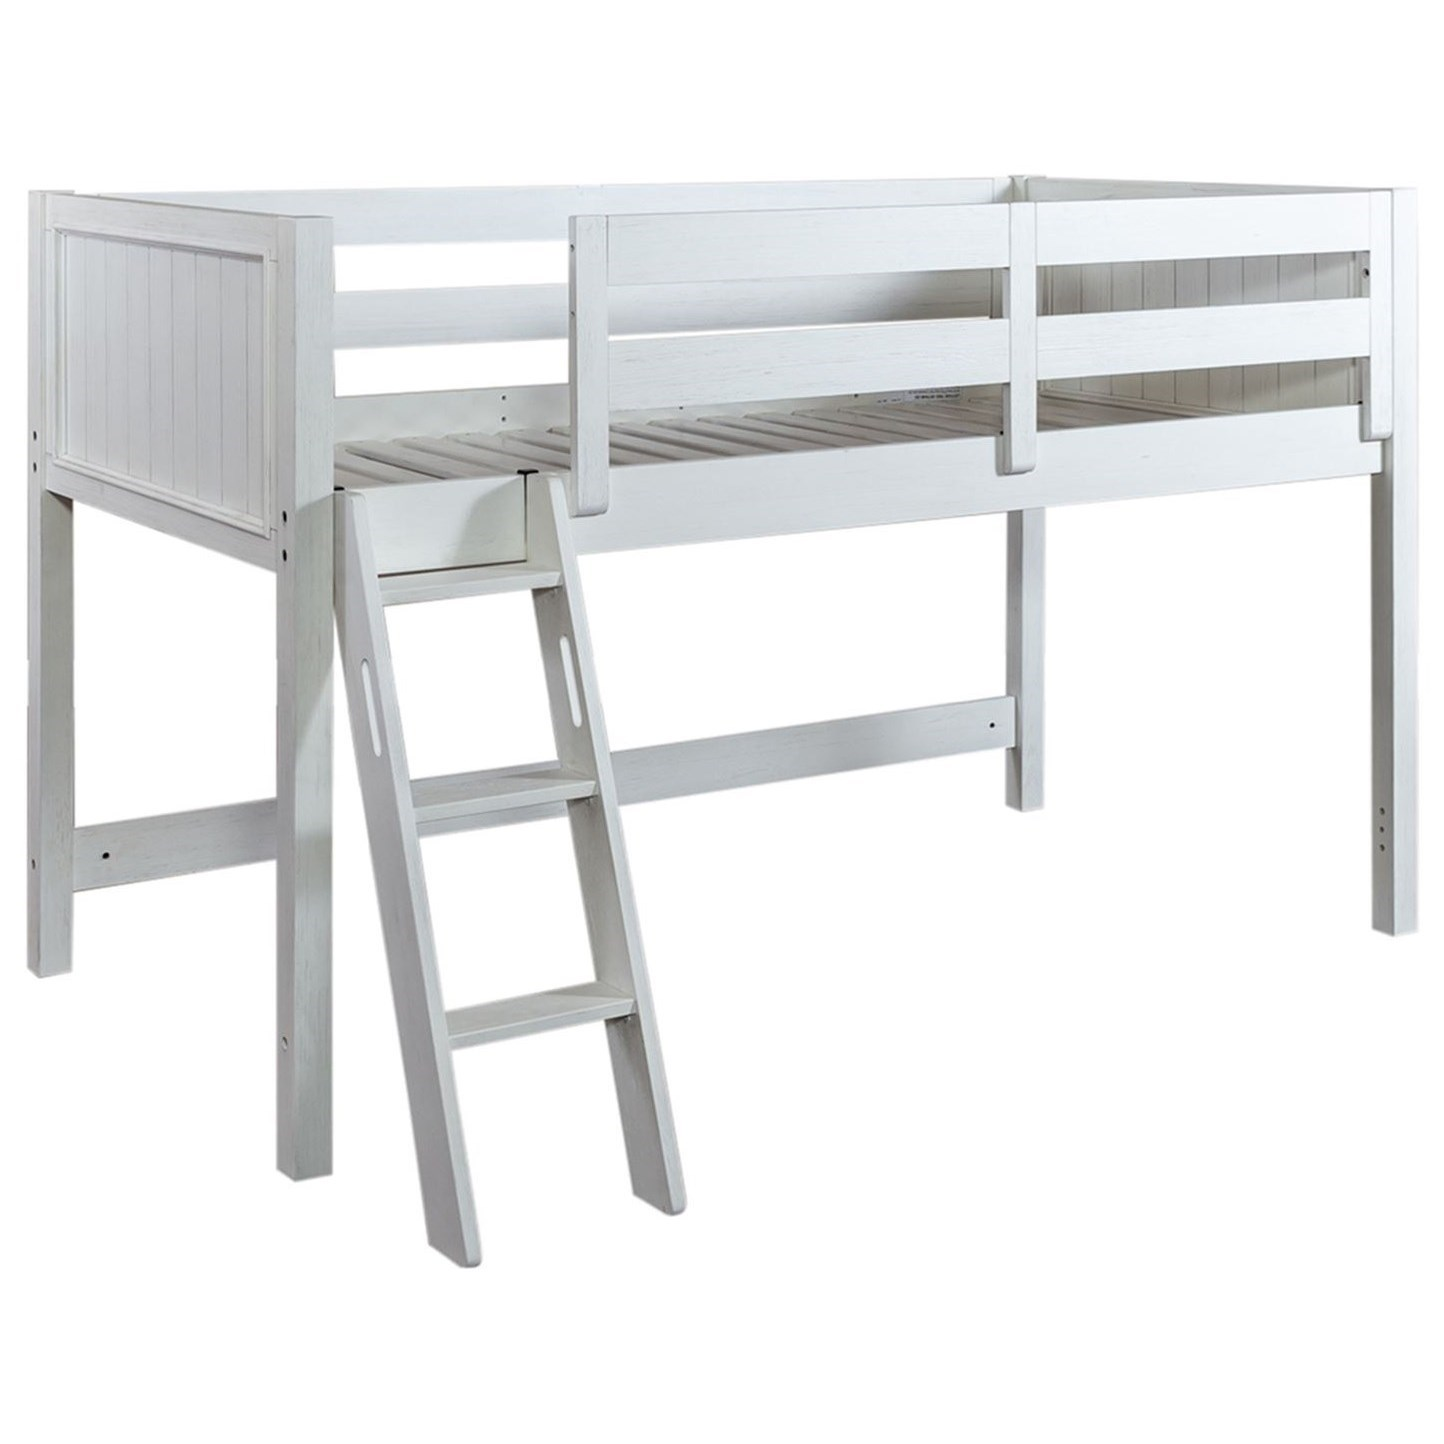 Allyson Park Twin Loft Bed Open by Liberty Furniture at Van Hill Furniture